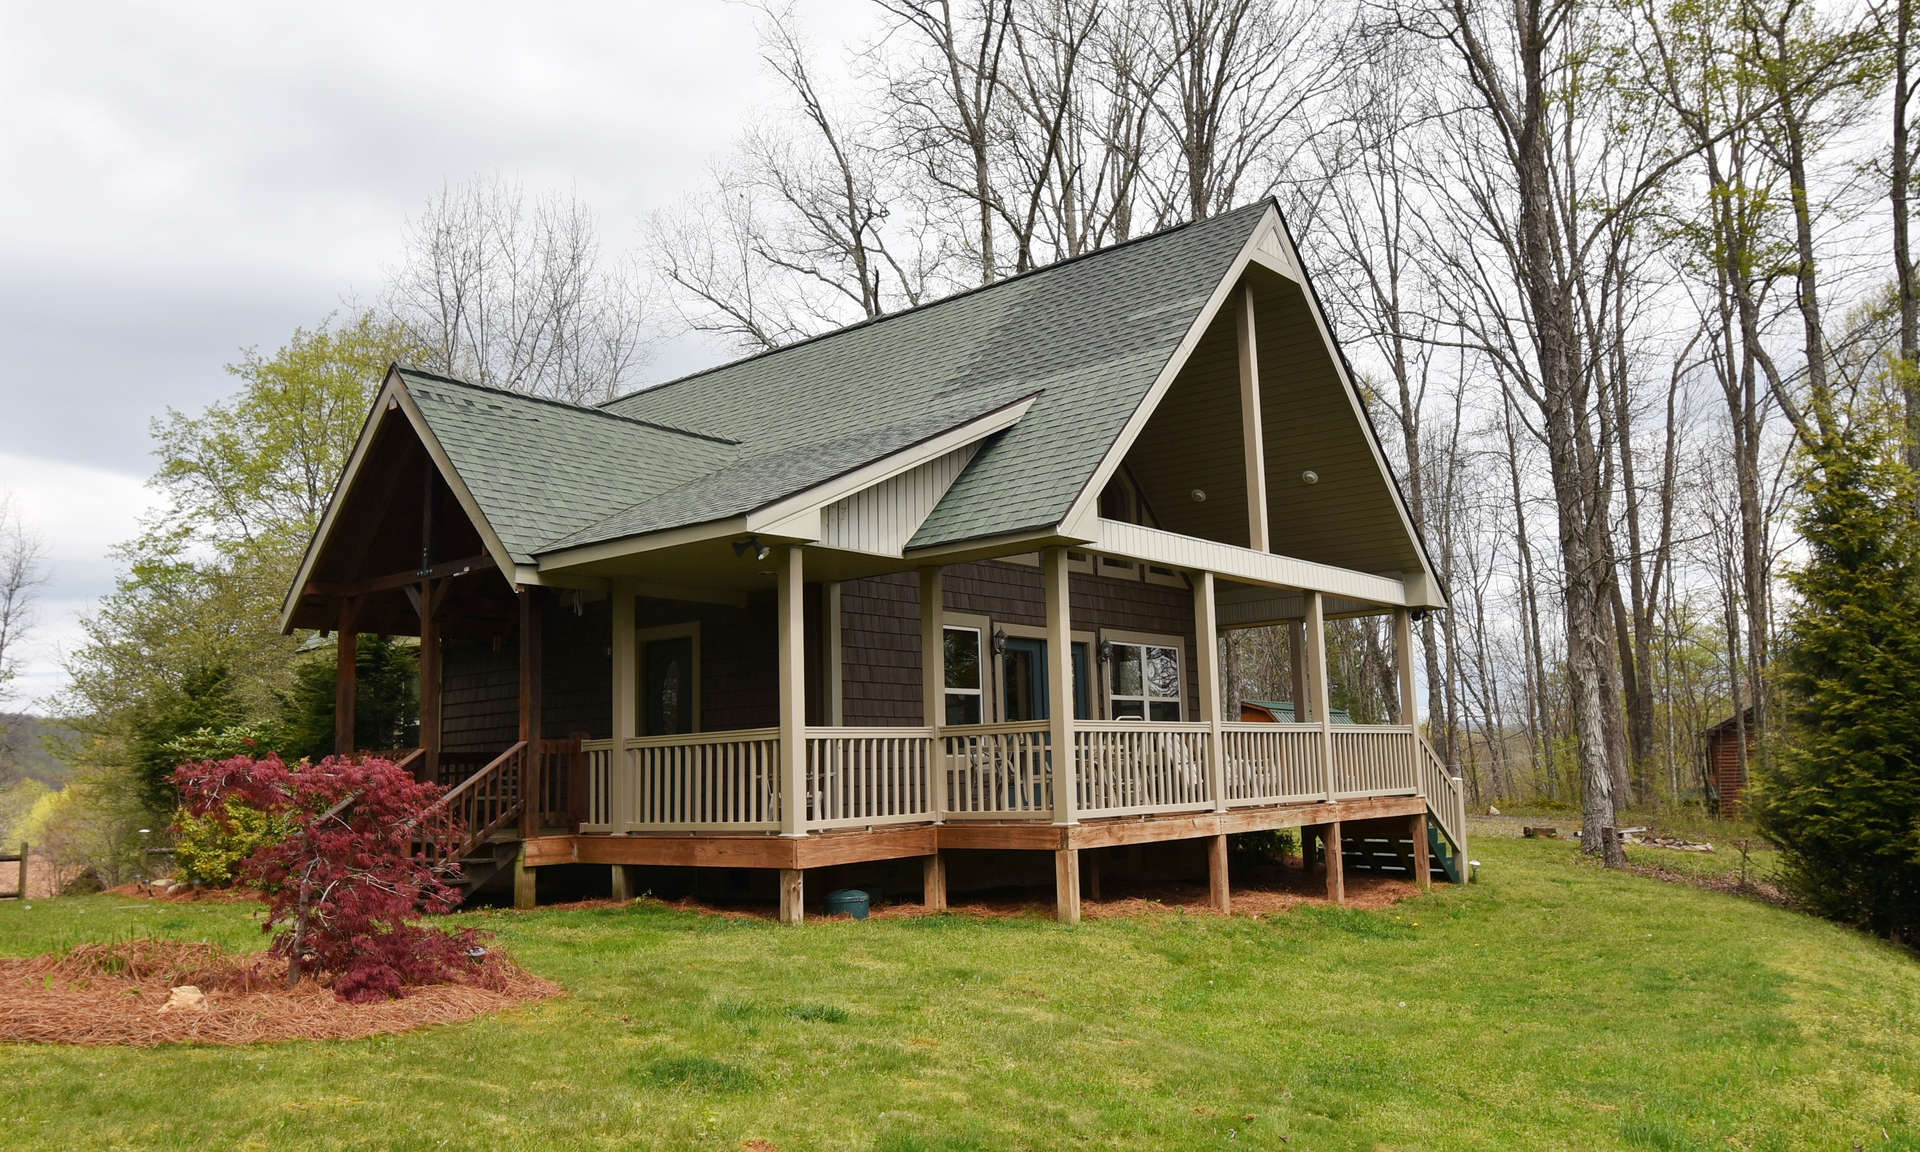 Country roads take you home to your  River Breeze log cabin with long range mountain views and cradled in a 3.73 acre setting in River Breeze Estates, a well established community offering common river access and located in the Creston area of Ashe County in the North Carolina Mountains.